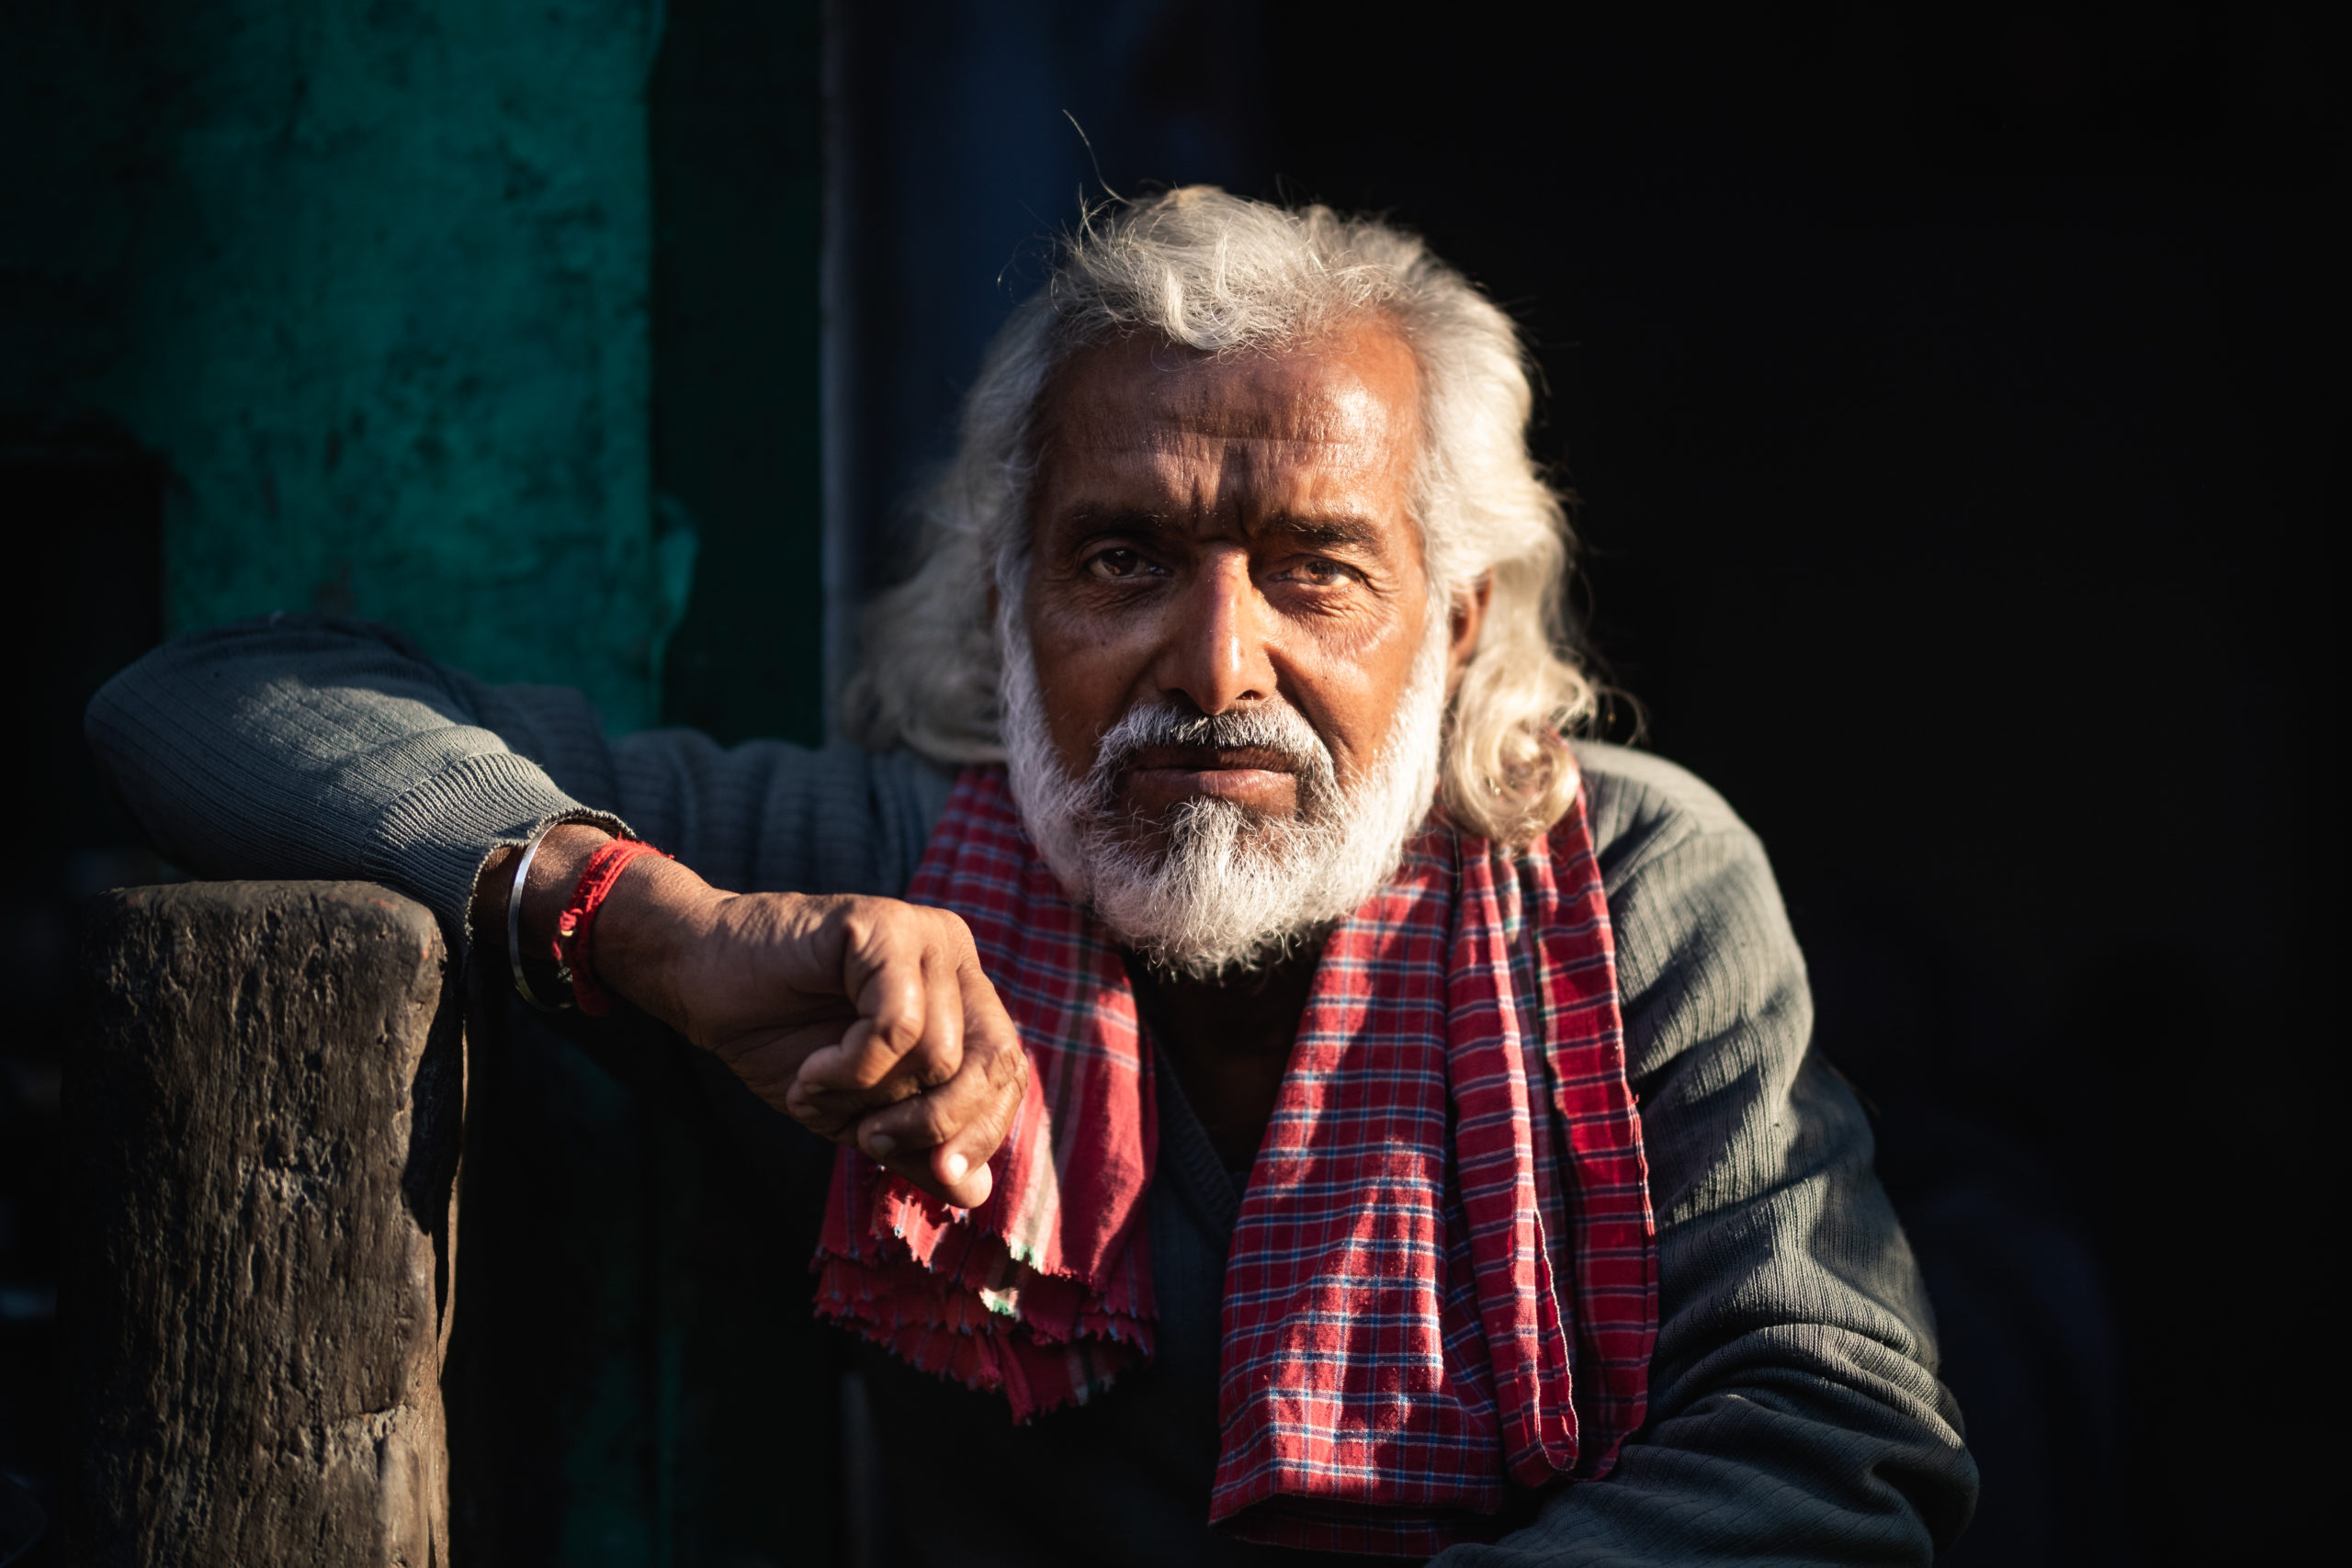 Street Photography of an elderly man during sunset in Mathura, India